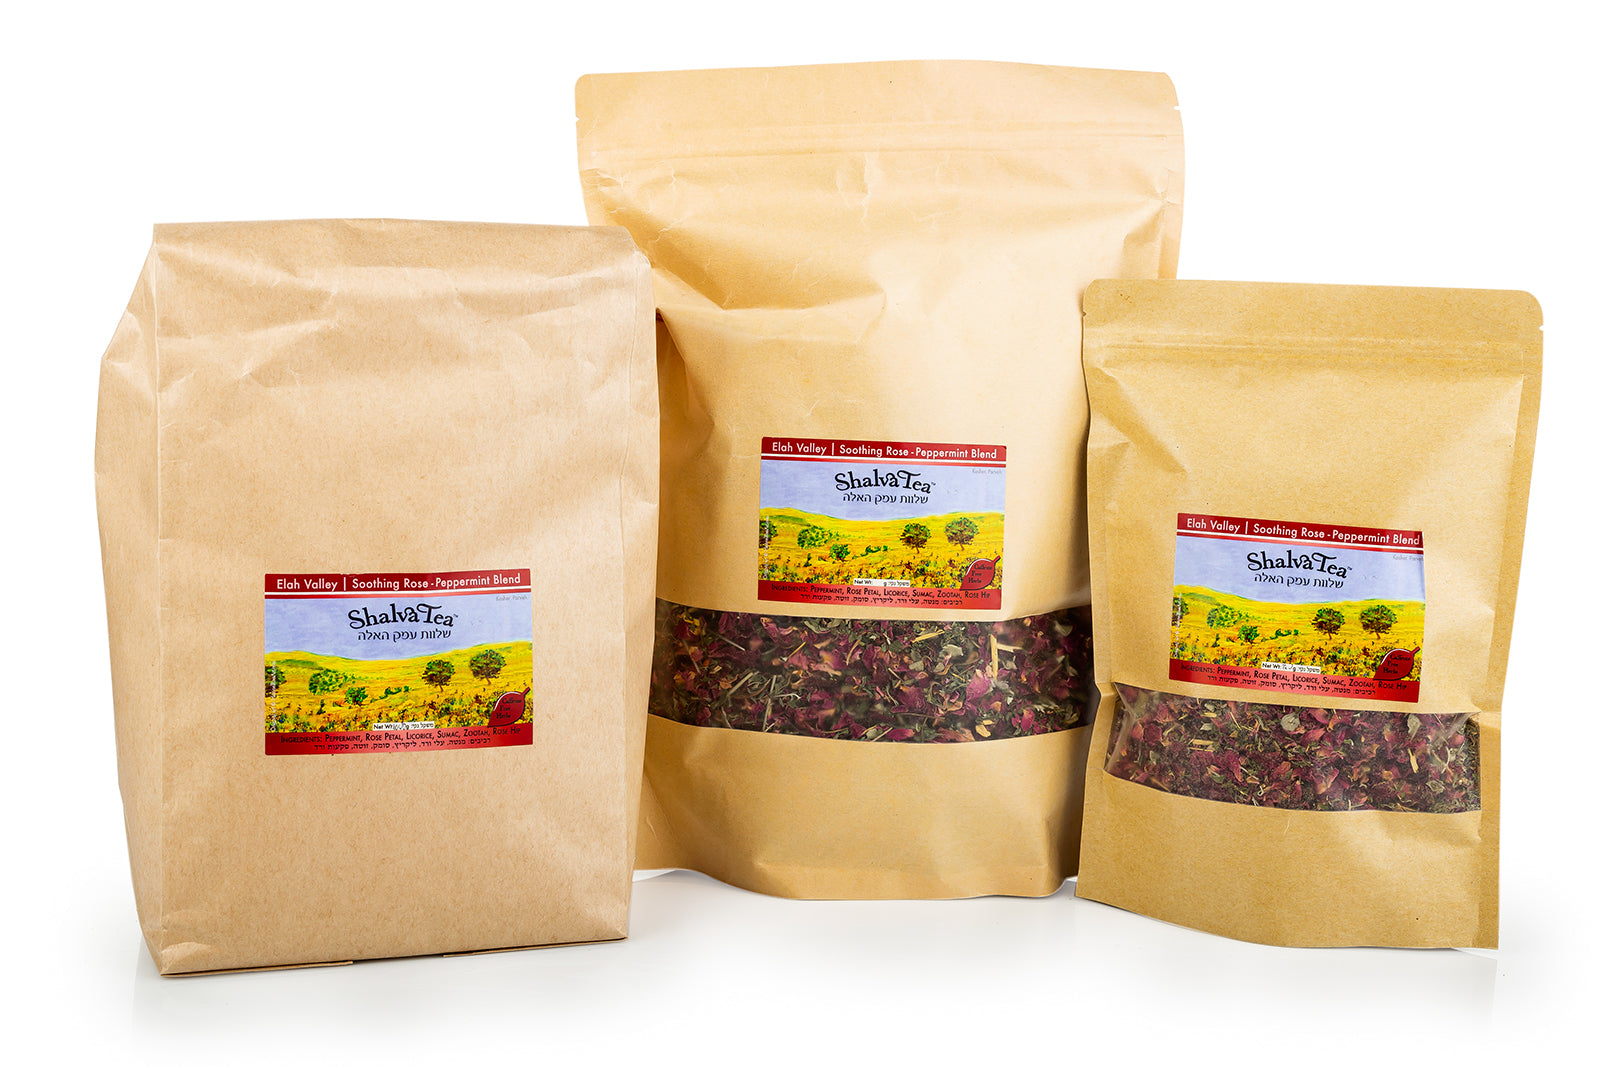 Soothing Rose-Peppermint | Elah Valley Blend - ShalvaTea Kosher Israeli Herbal Teas